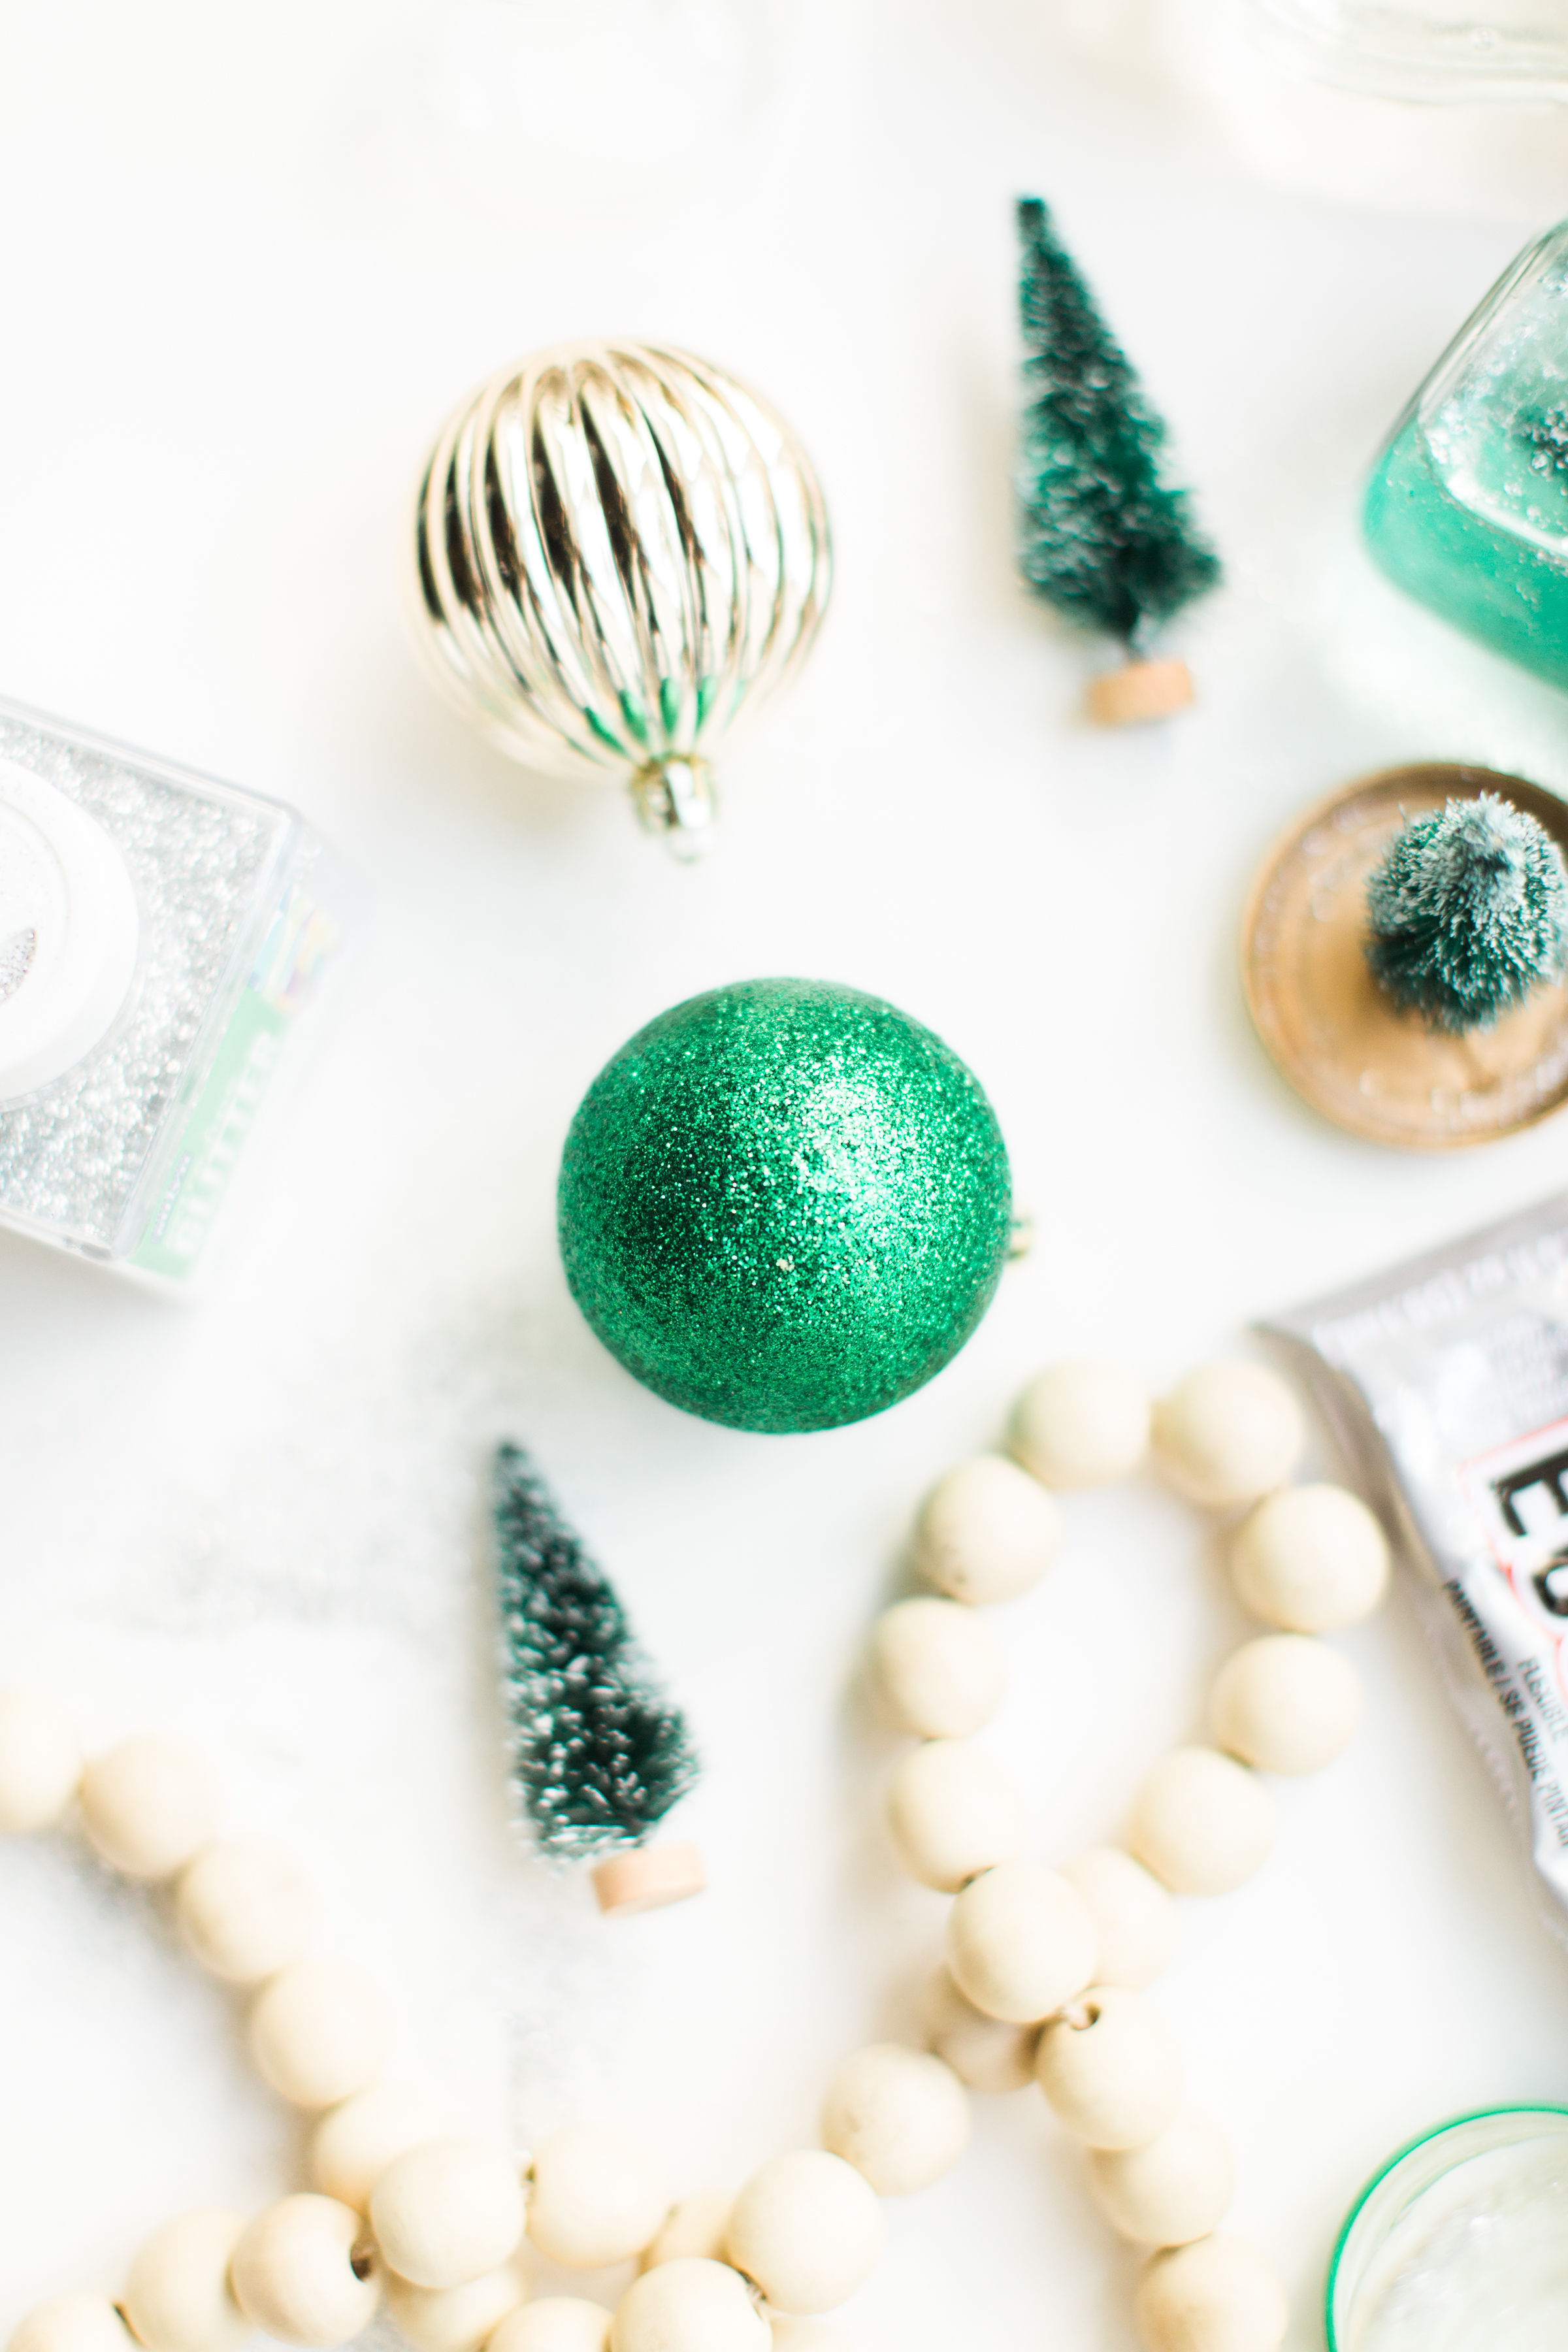 Glitter DIY snow globes are fun to make, are a great craft to do with kids, and double as a calm down sensory bottle for a little quiet time on days when the whole family is going a little stir crazy! Click through for the details. #kidsdiy #kidscraft #diysnowglobes #howtomakesnowglobes #sensorybottles #sensoryglobes #toddlercraft #wintercraft #christmas #christmasdiy  | glitterinc.com | @glitterinc